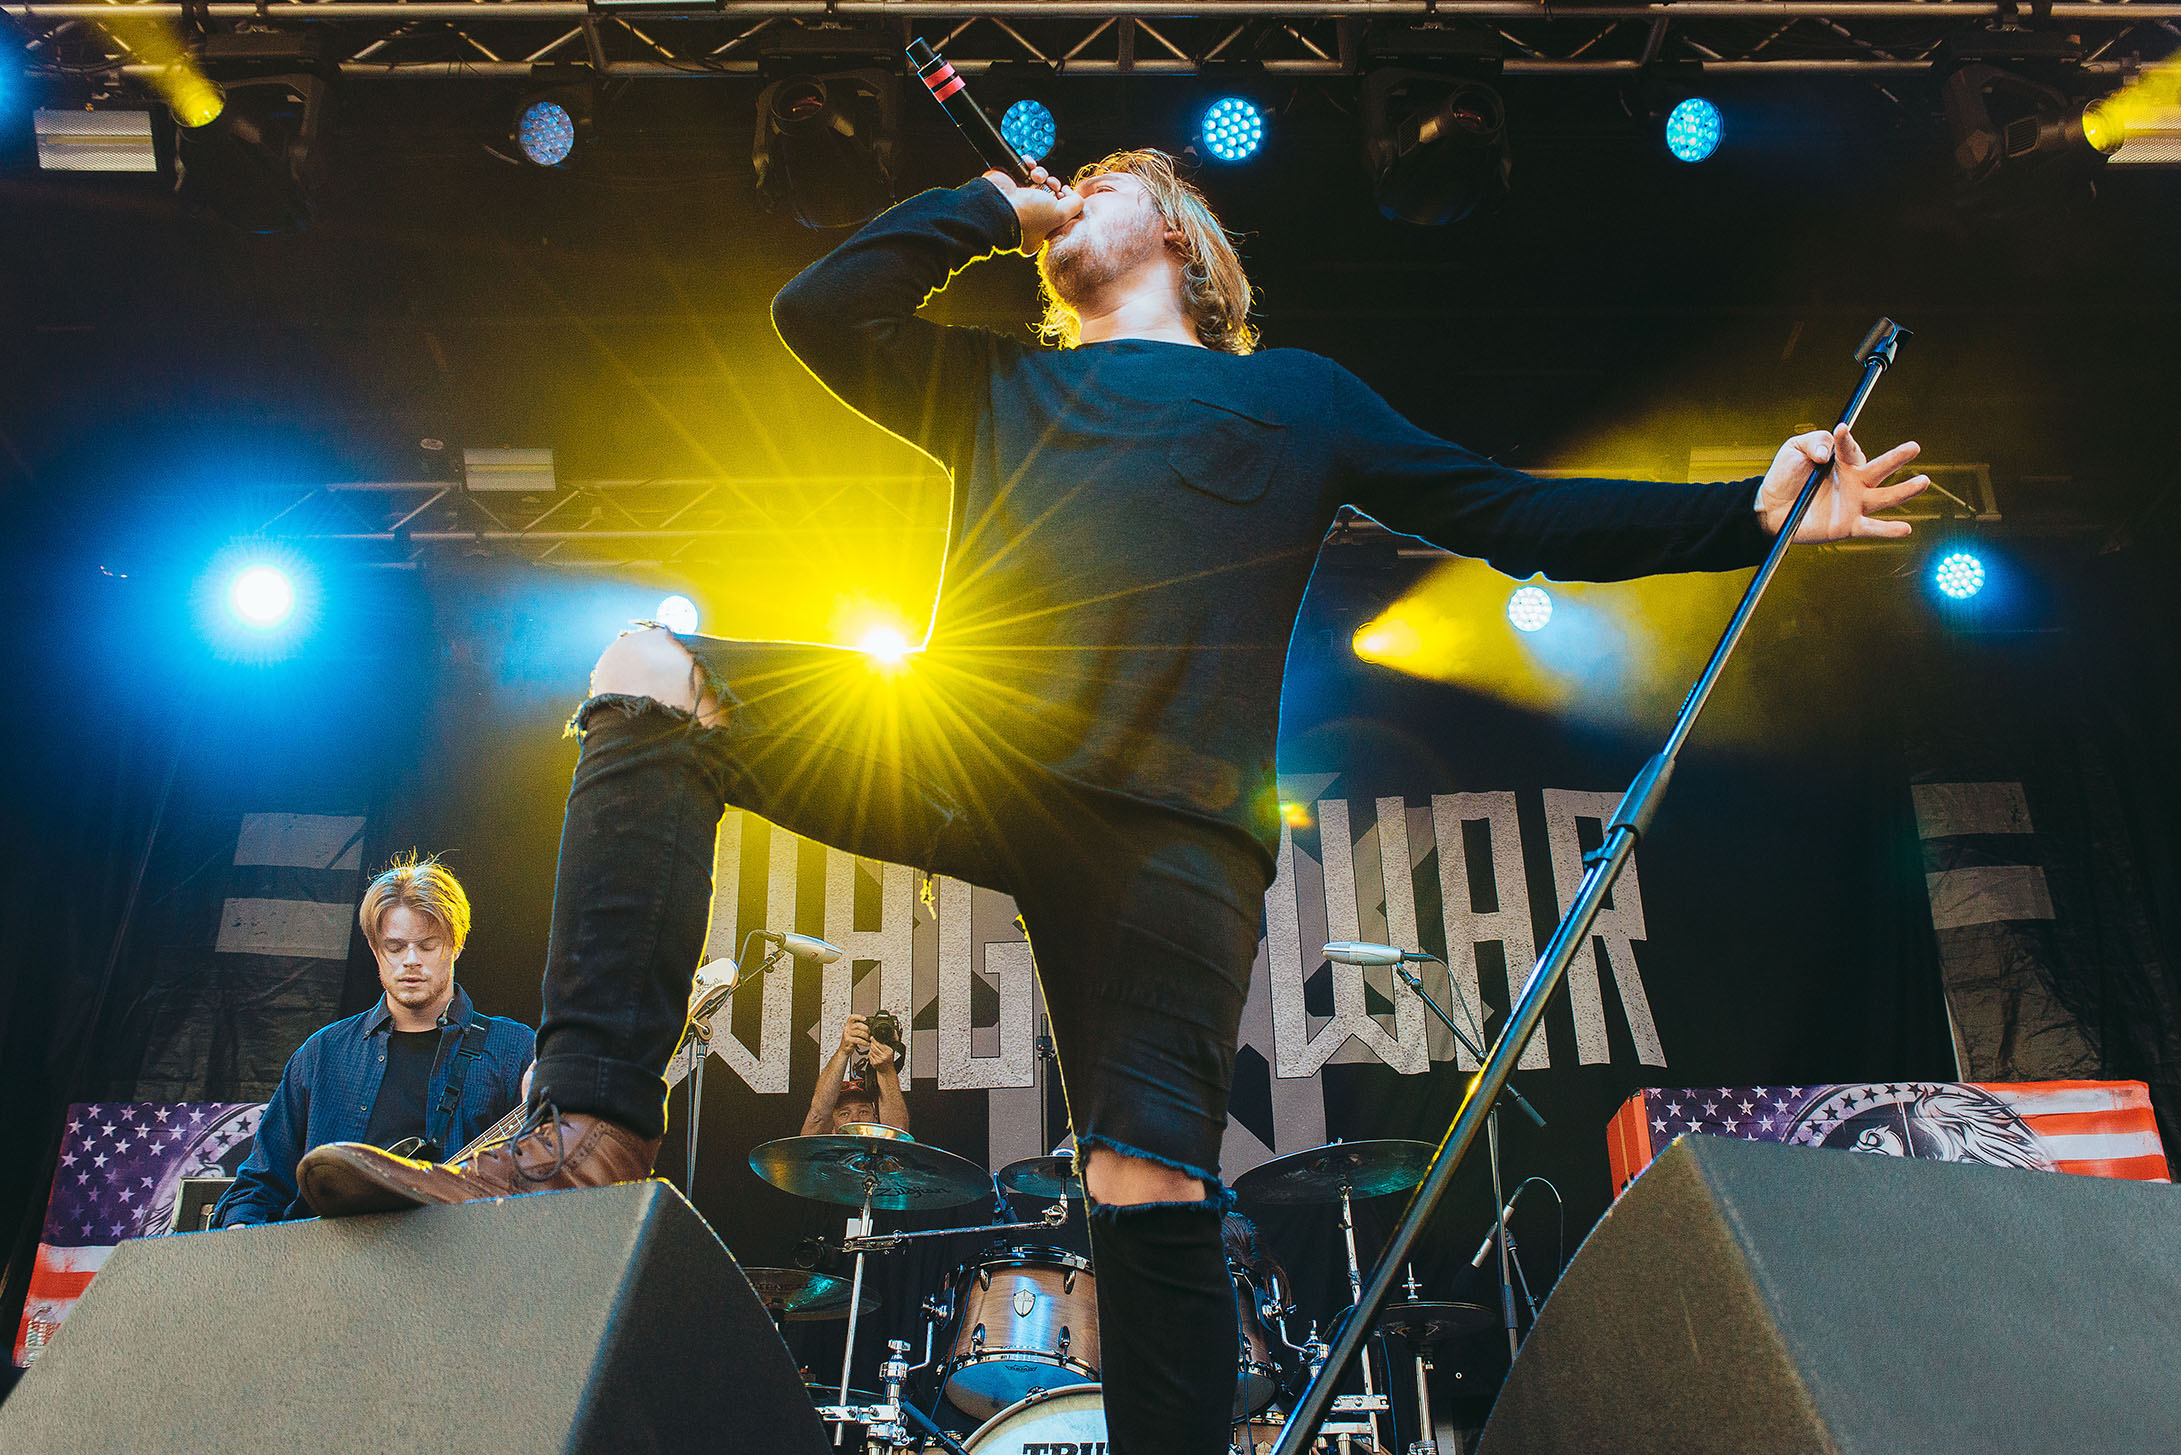 wage war briton bond lead singer band concert rock photo photography image